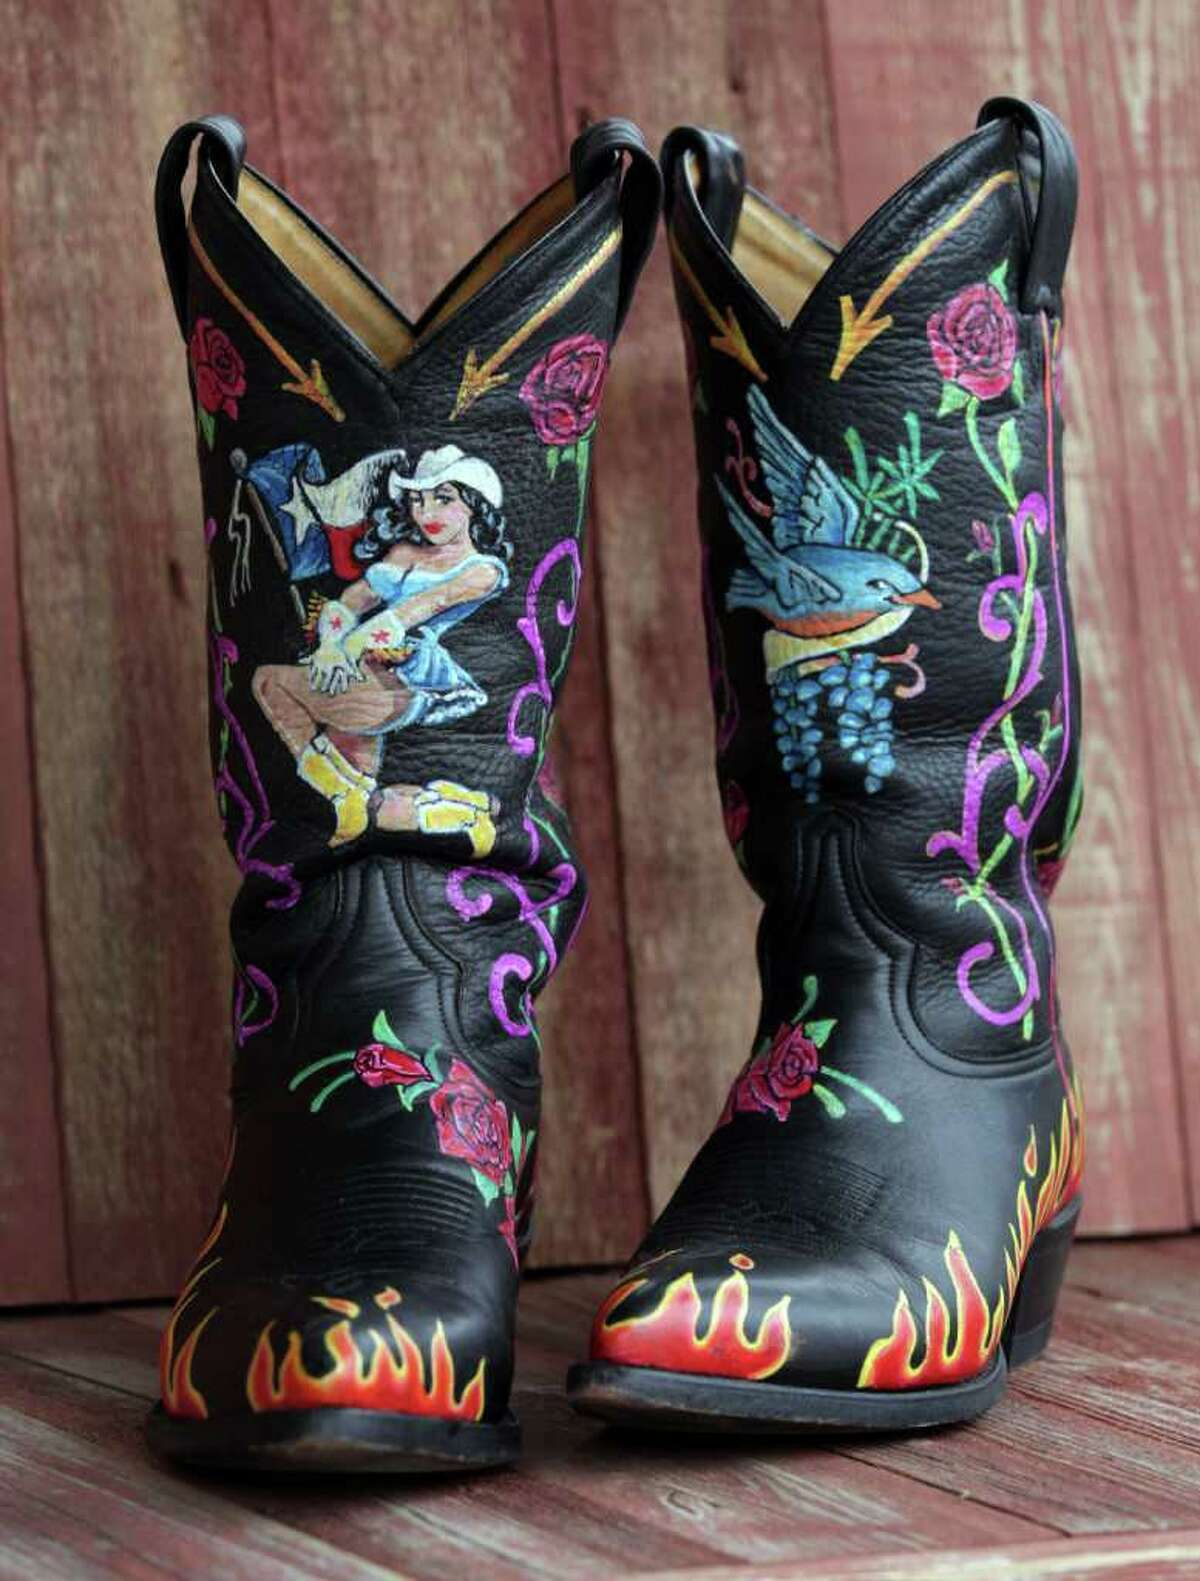 A closer look at Kathleen Kridler's hand painted cowboy boots.